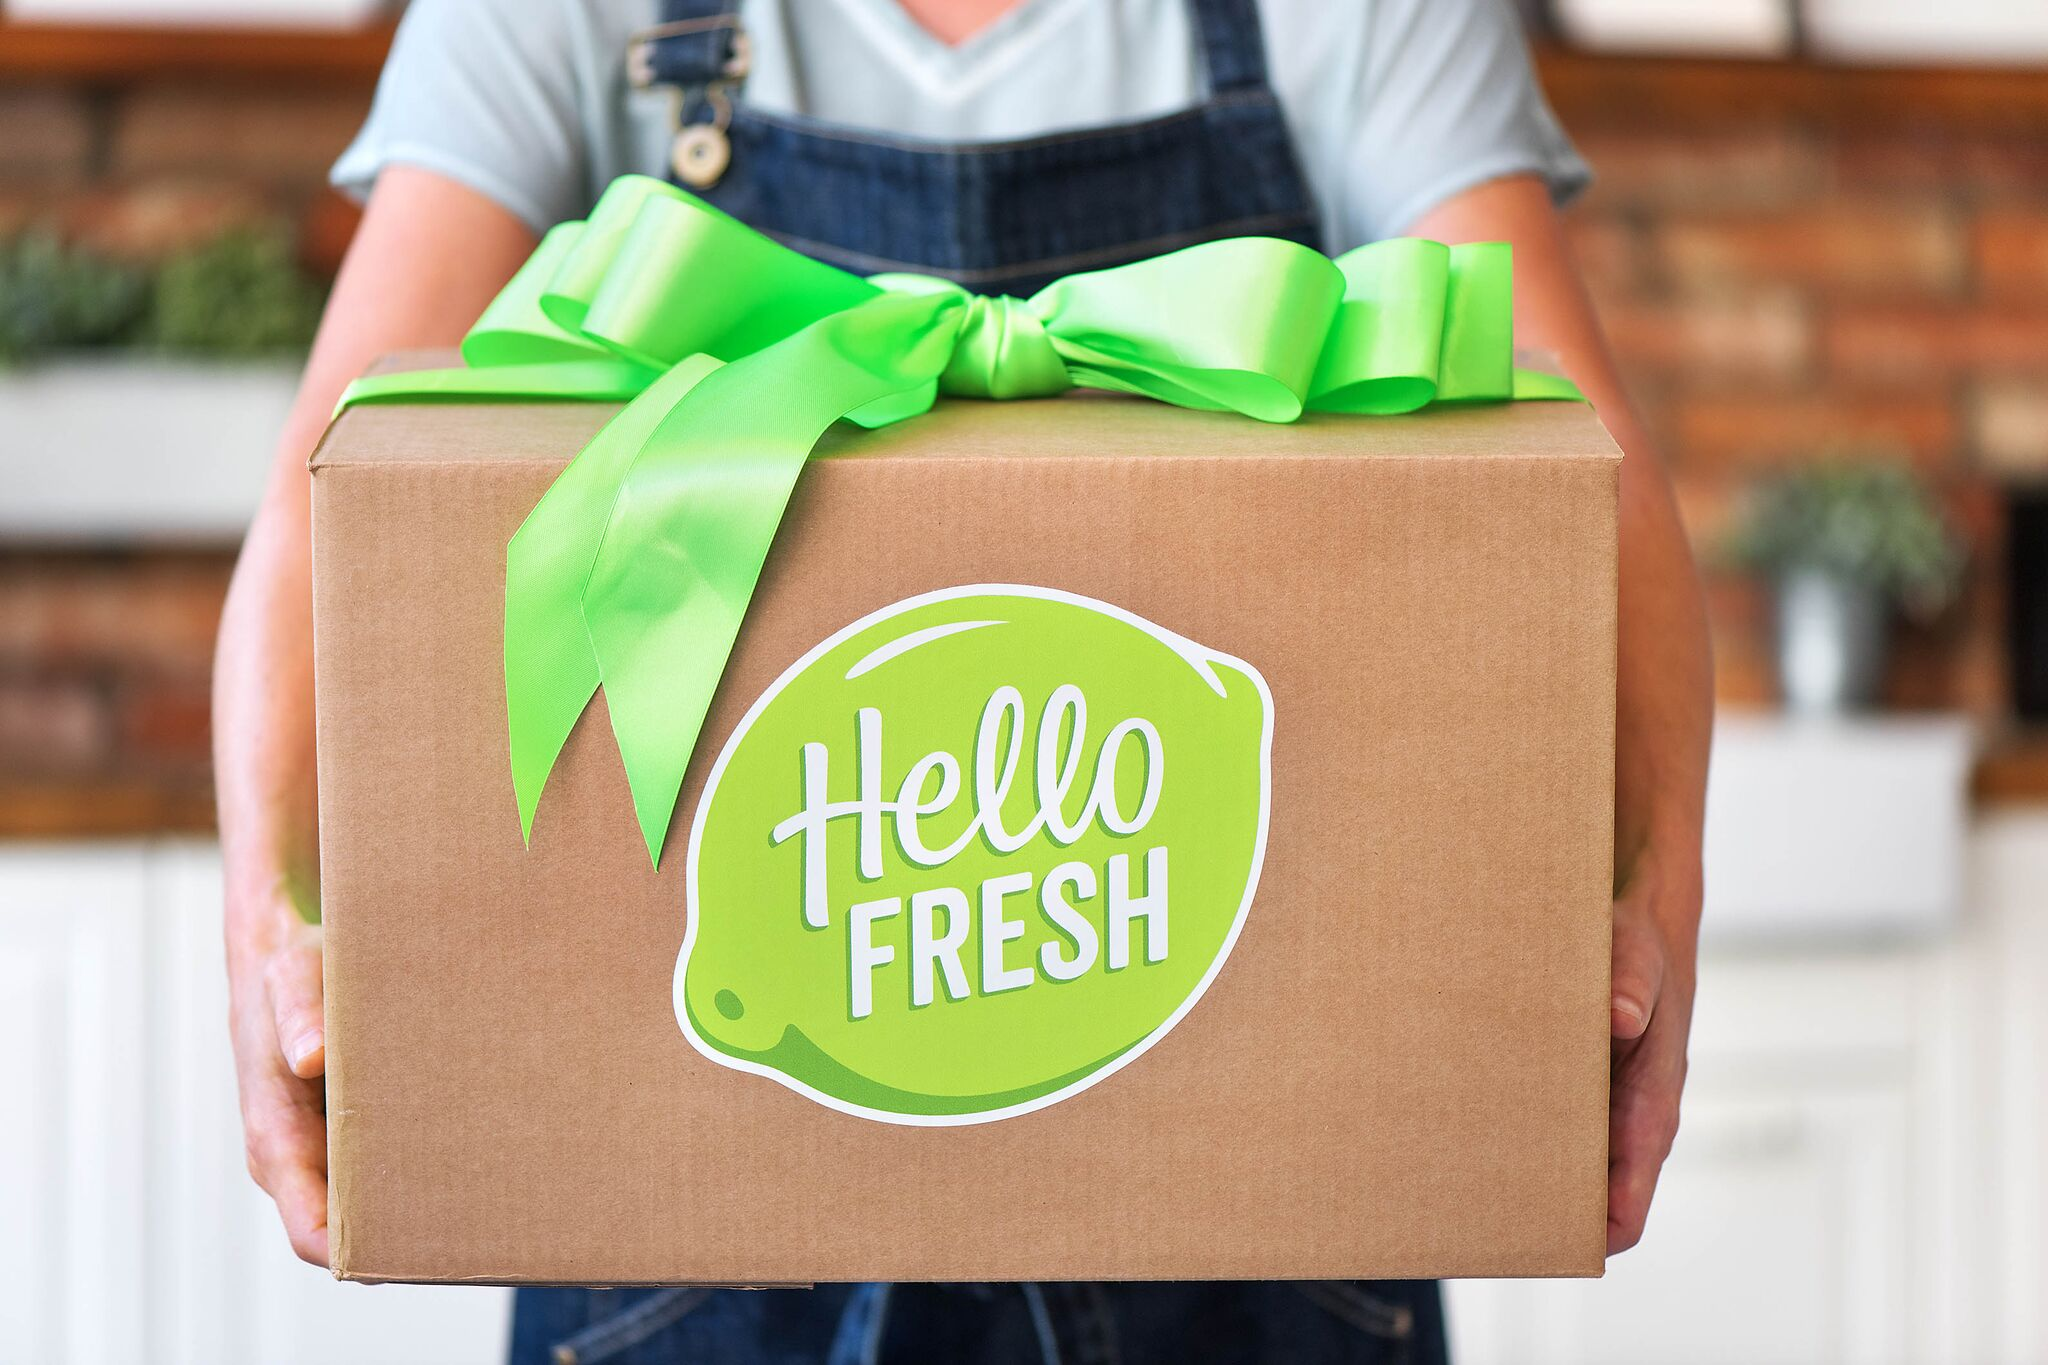 hello fresh food box